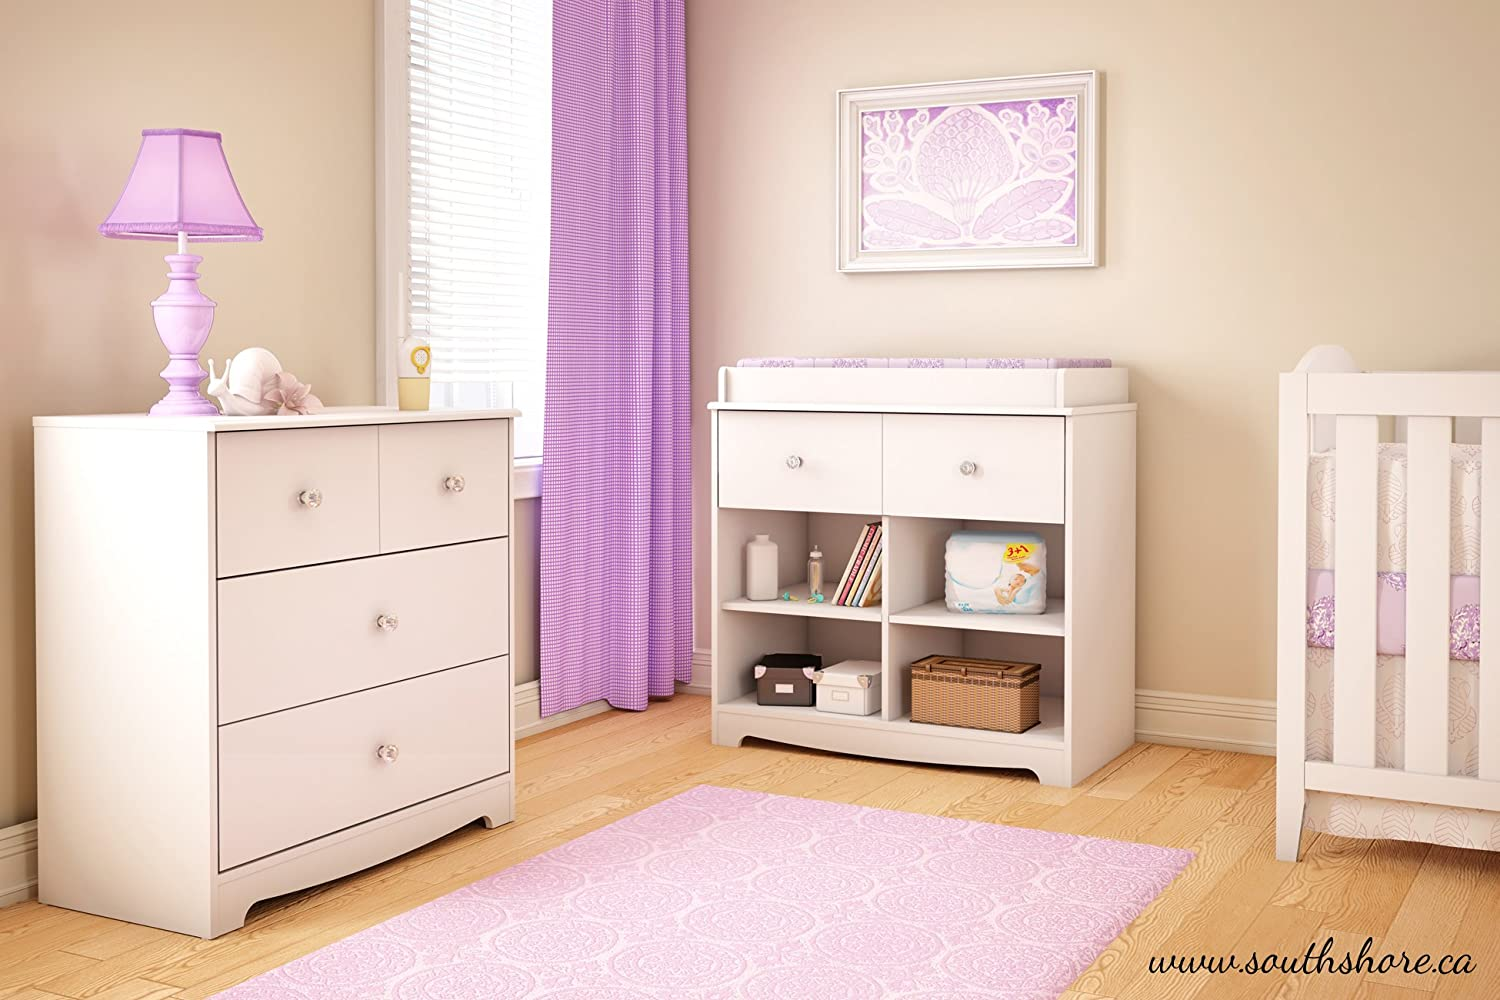 South Shore Little Jewel Small 1-Drawer Changing Table with Cube Storage Pure White